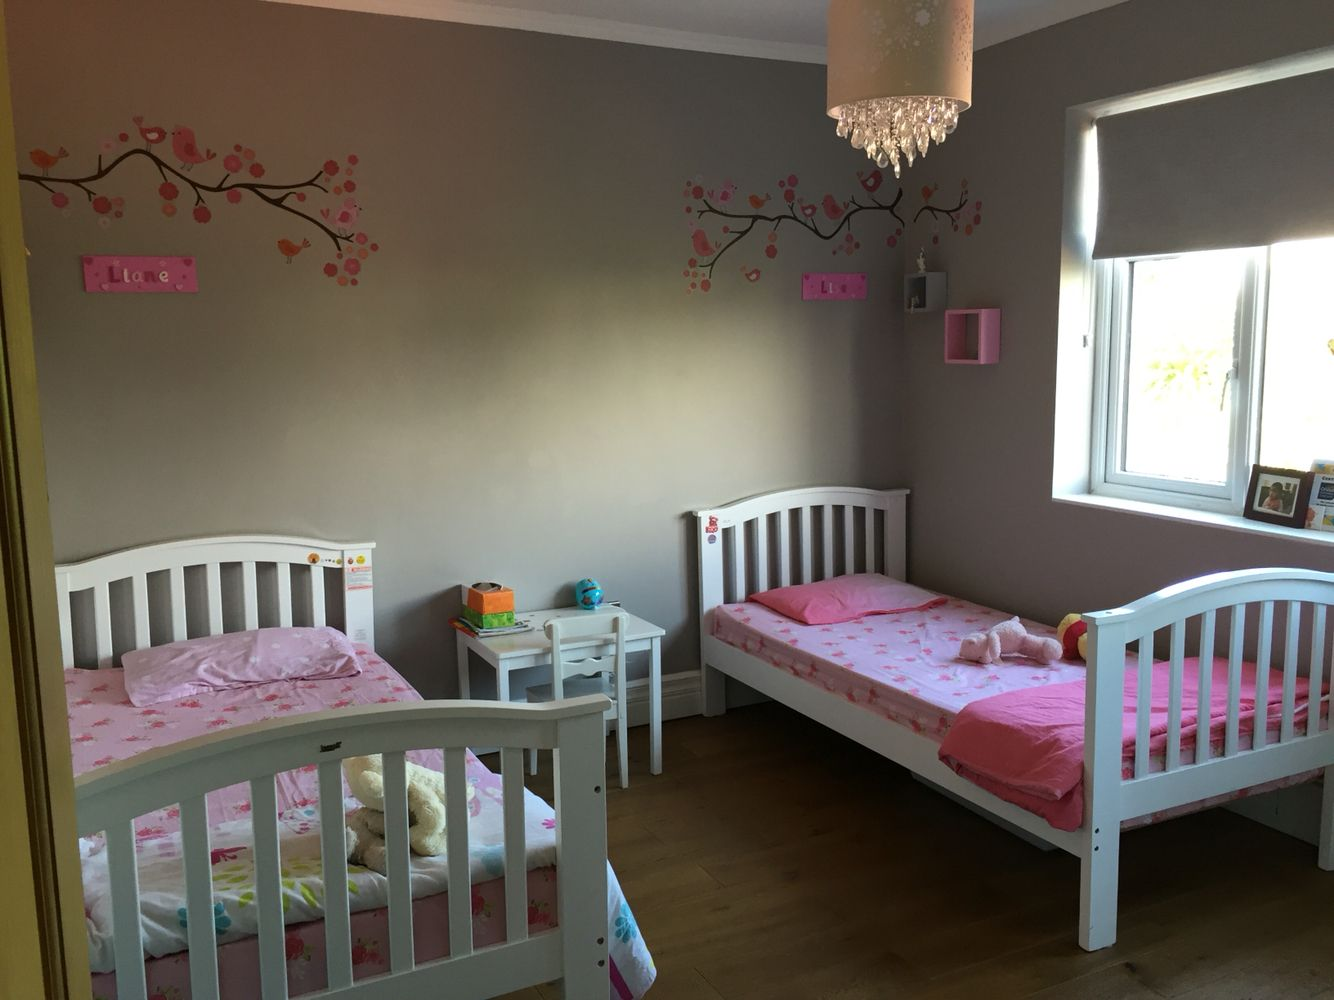 Kids bedroom walls painted in Farrow and Ball Dove Tail. Kids bedroom walls painted in Farrow and Ball Dove Tail   A 1930 s